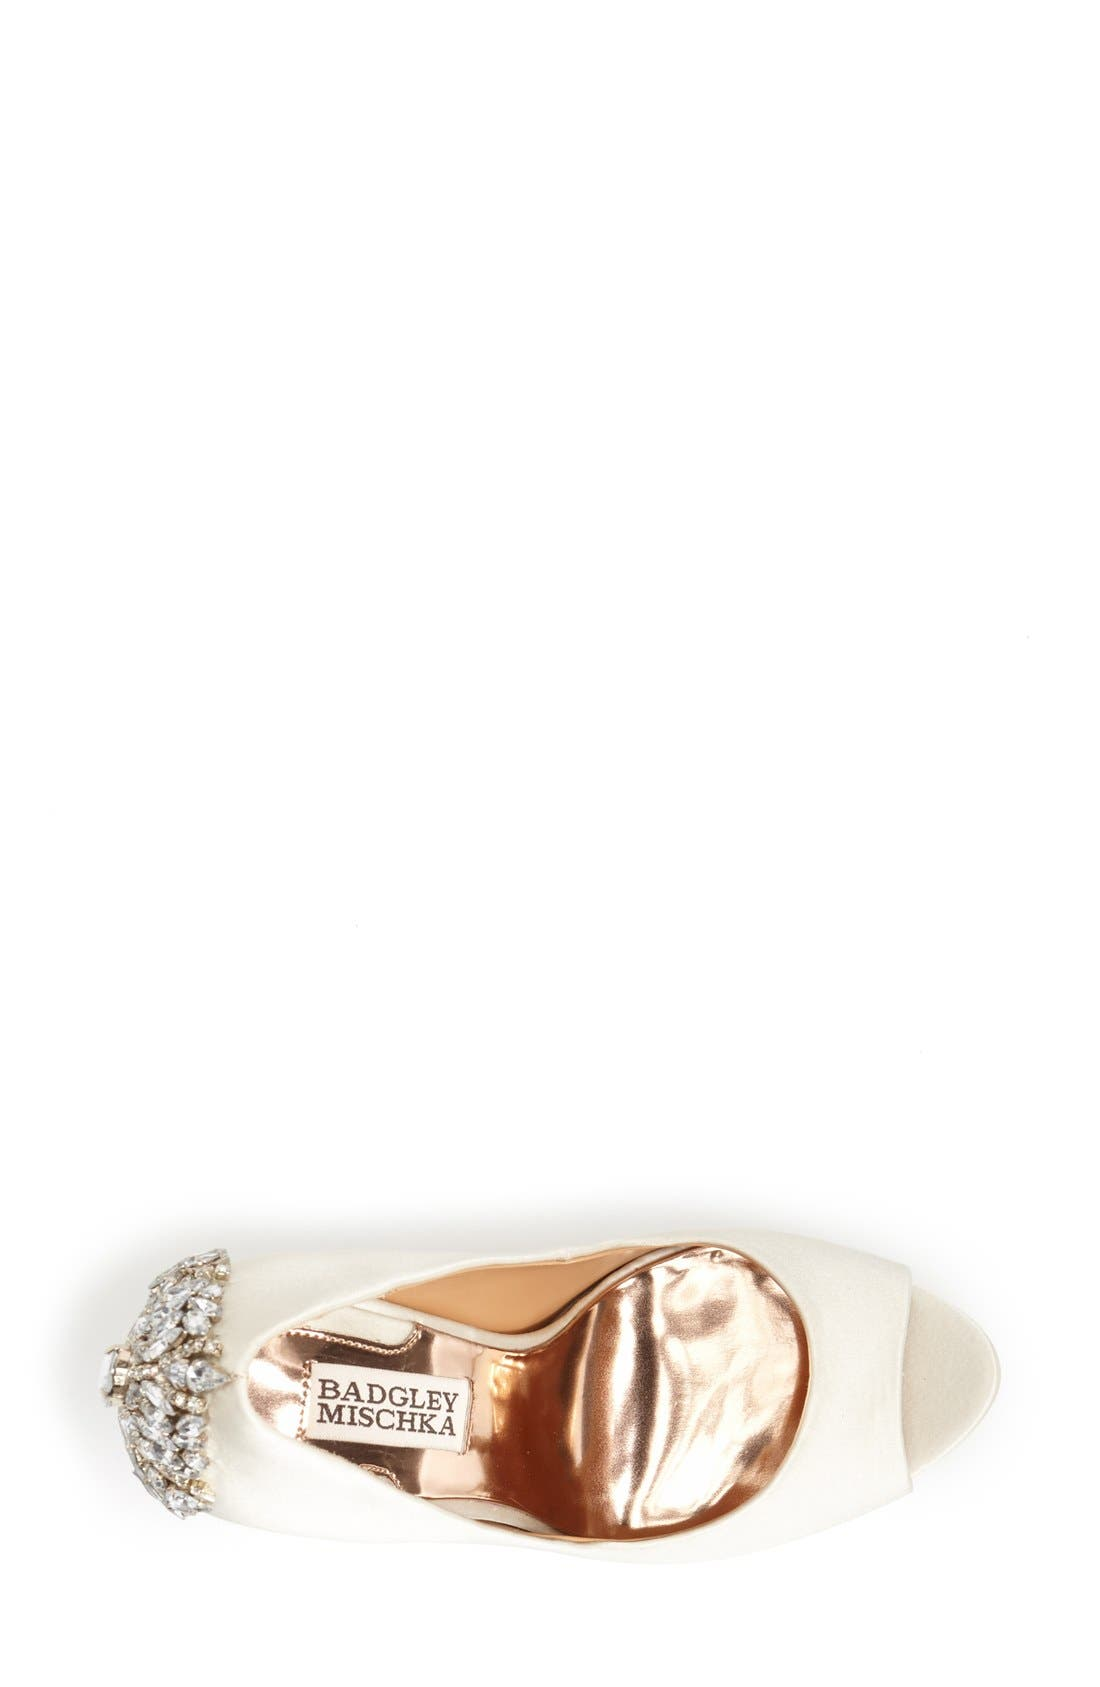 BADGLEY MISCHKA COLLECTION, Badgley Mischka 'Kiara' Crystal Back Open Toe Pump, Alternate thumbnail 3, color, IVORY SATN